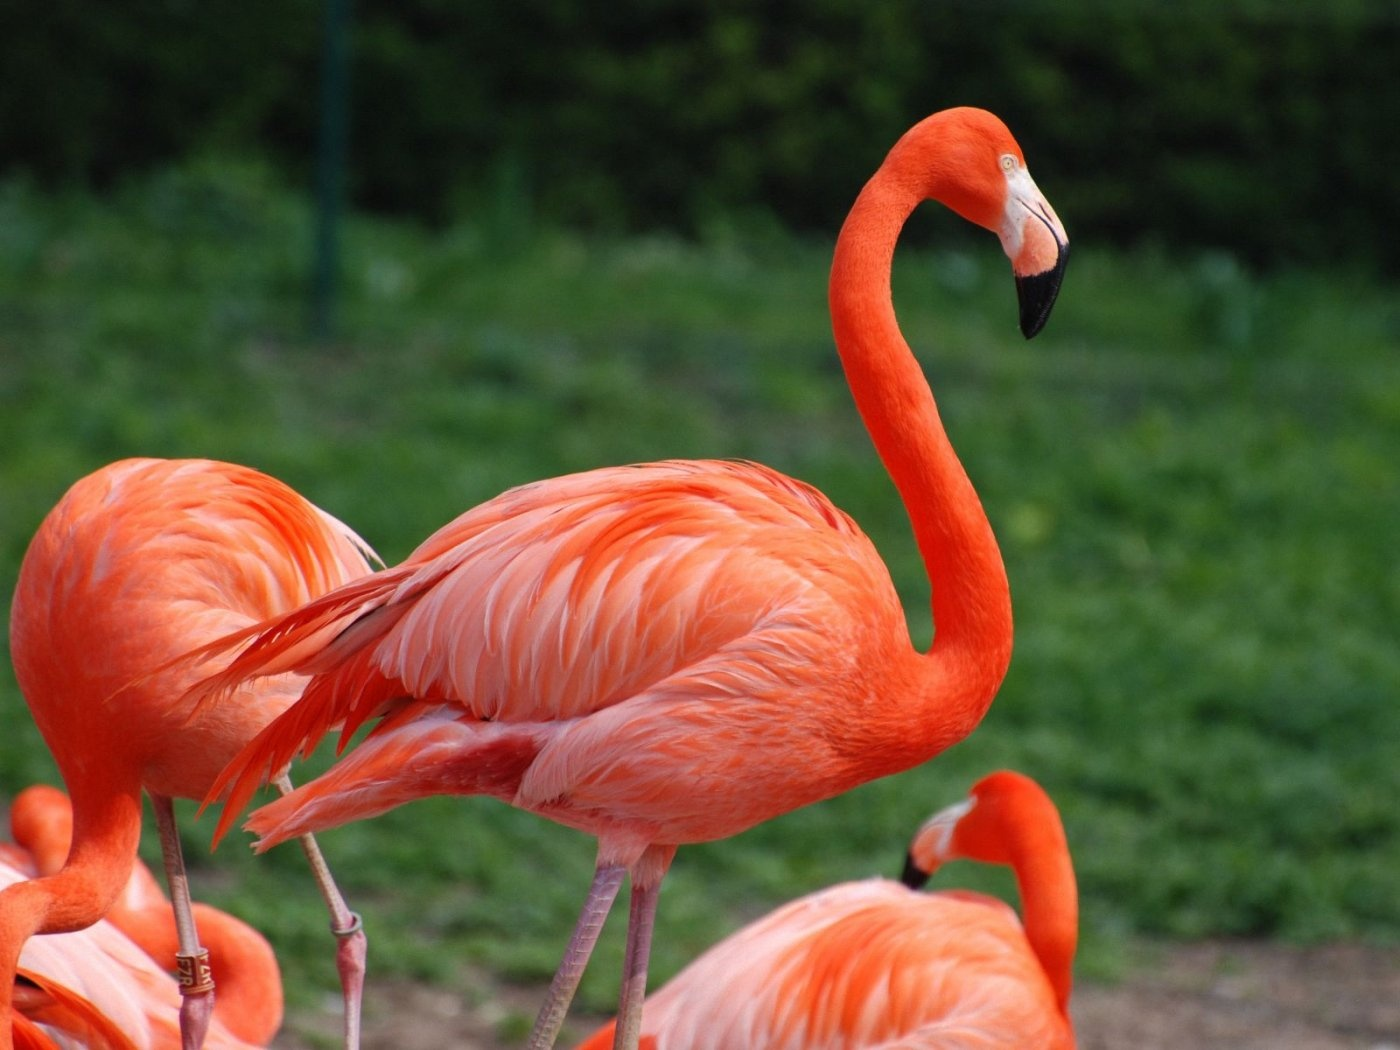 Flamingo hd